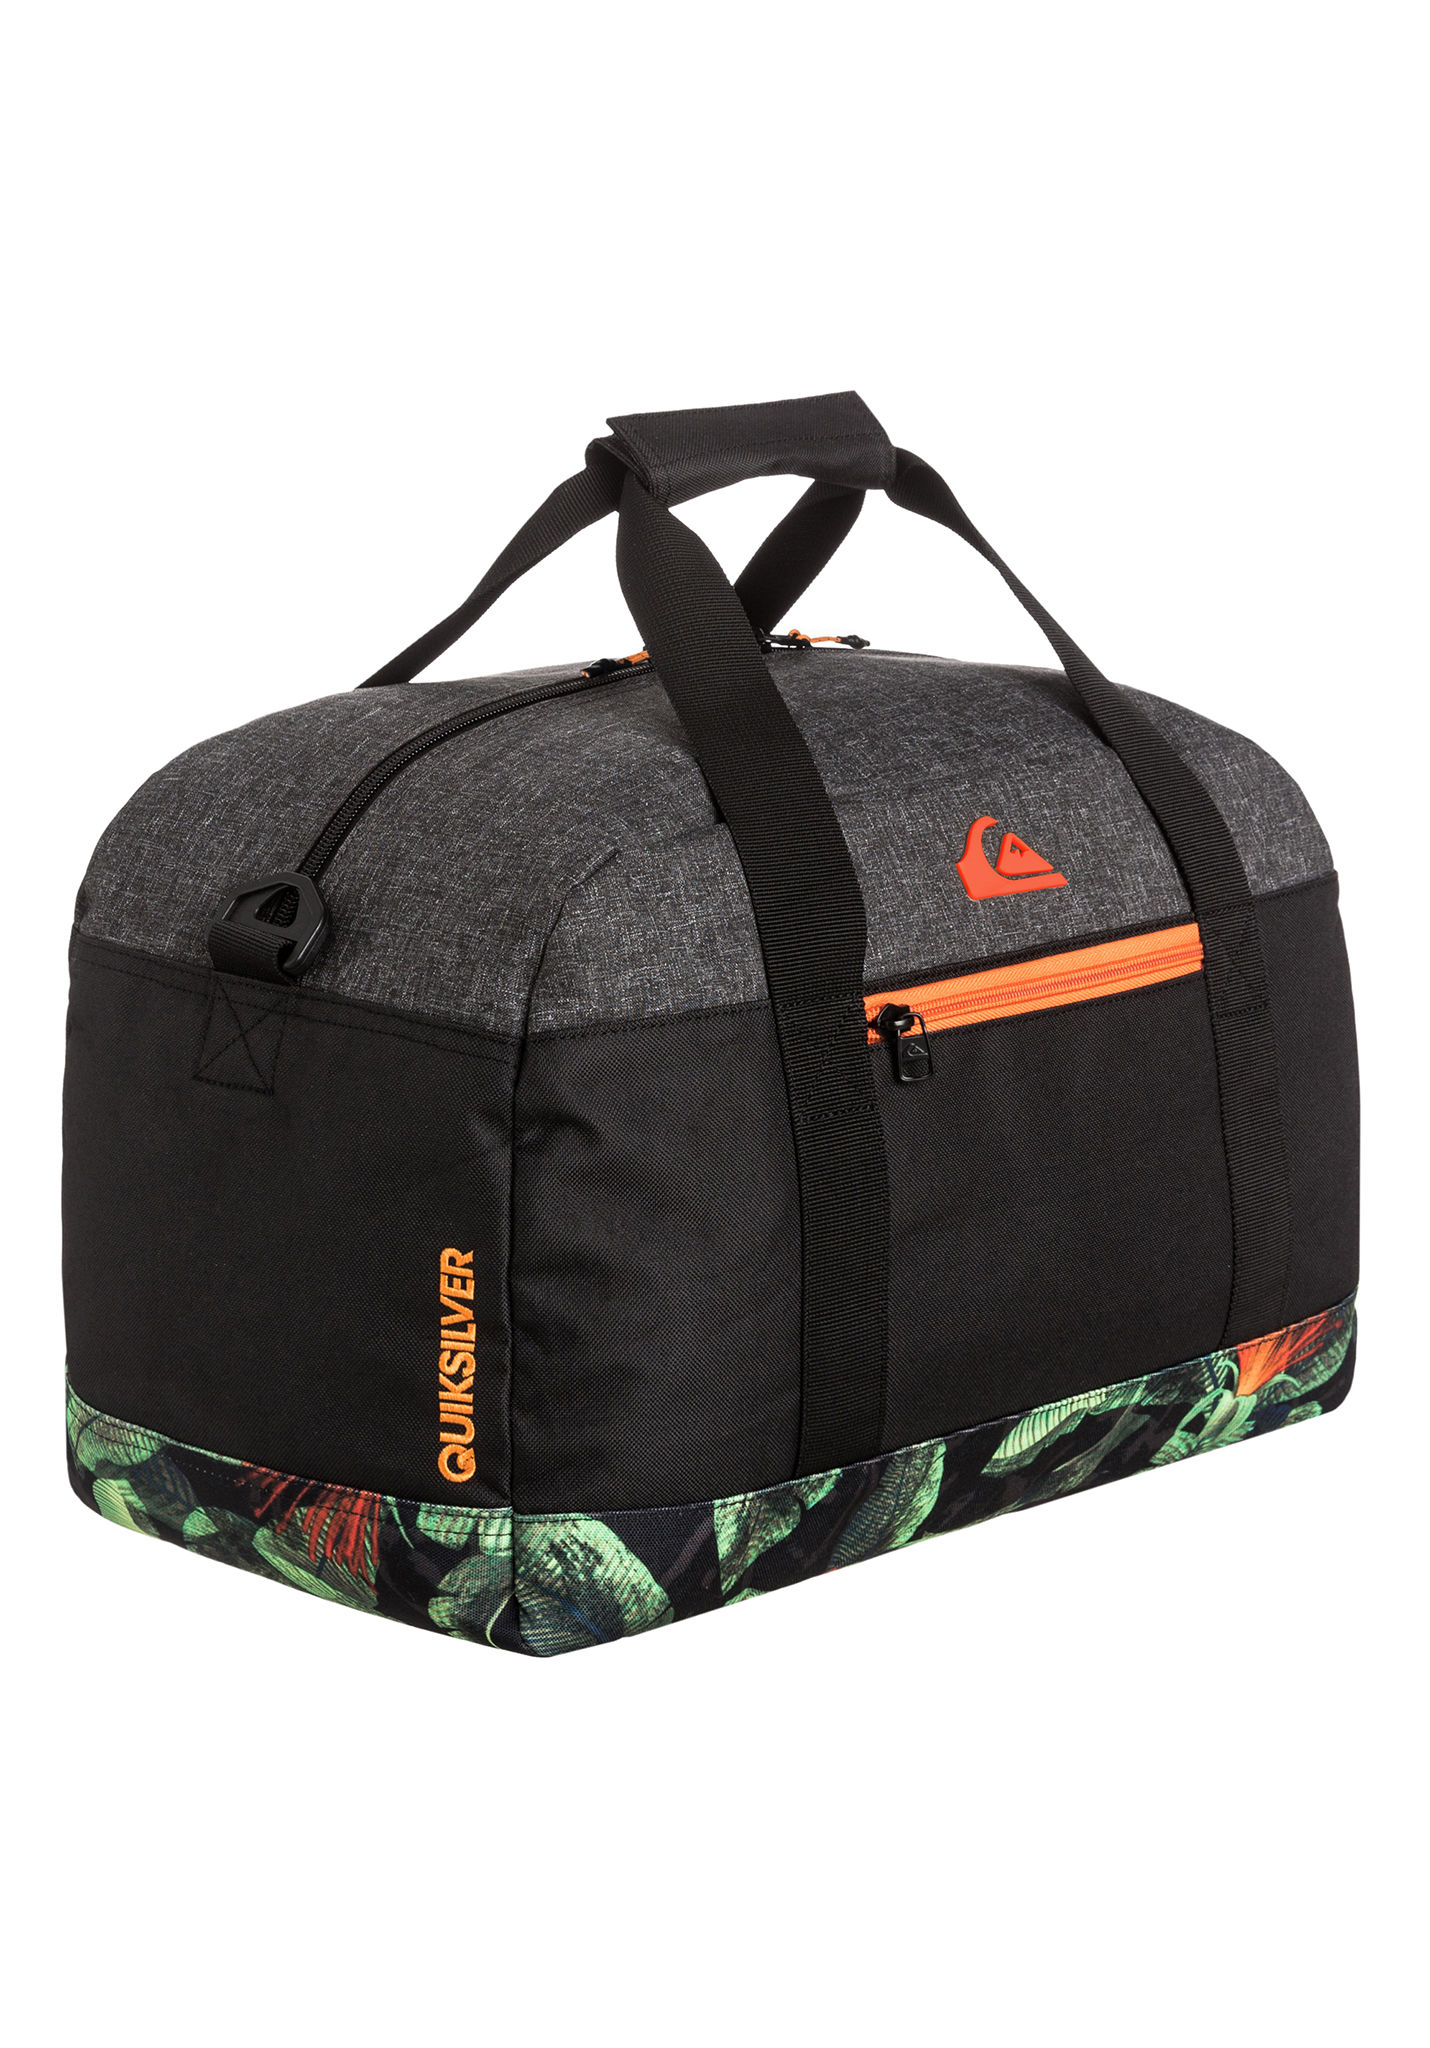 Quiksilver Sac de voyage Small Shelter